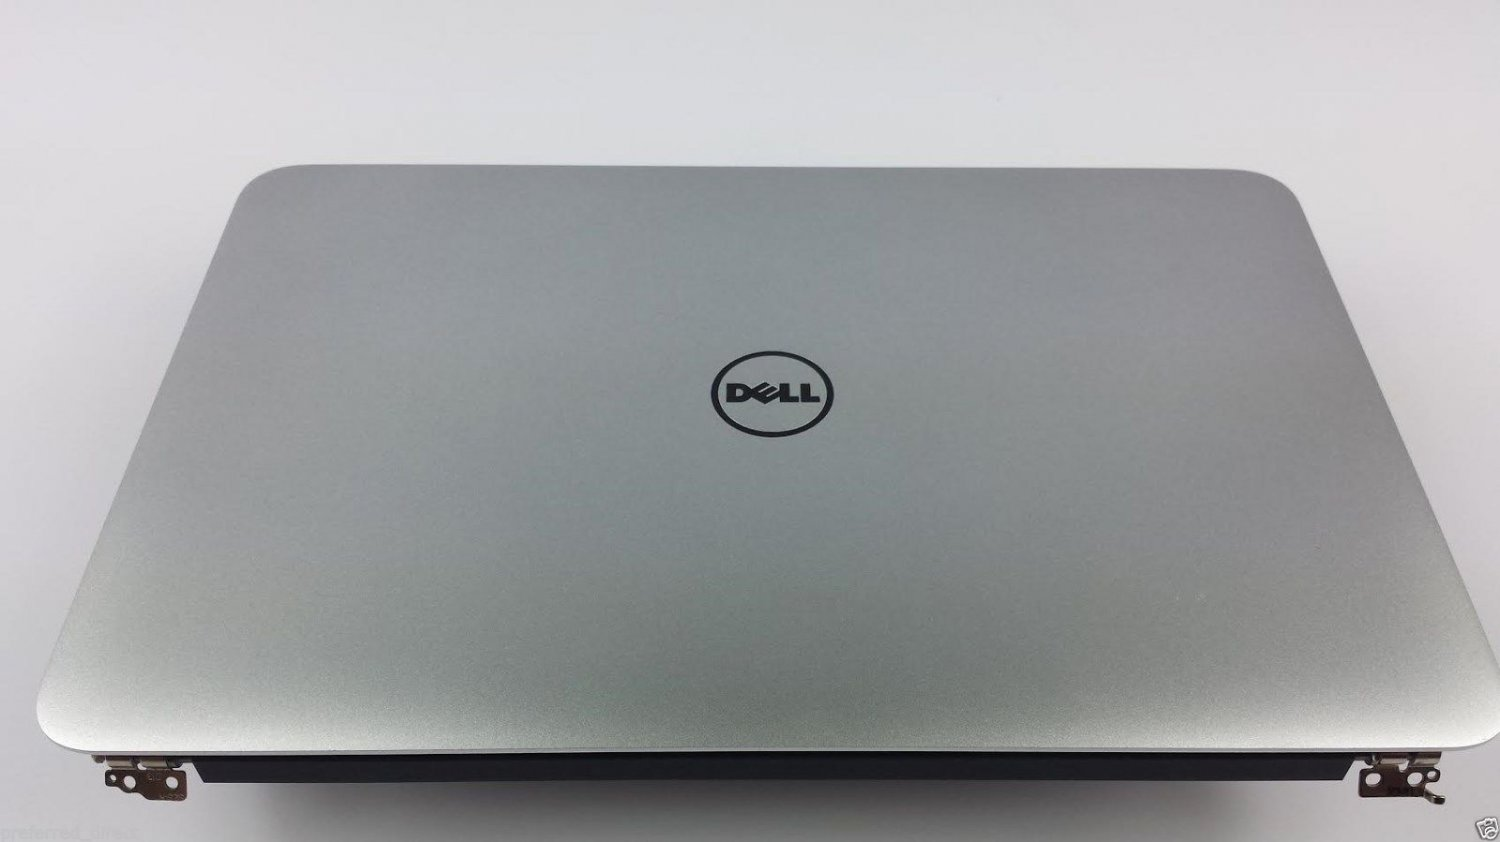 New Dell XPS 13 (L322x) Ultrabook Silver Anodized Aluminum LCD Back Cover